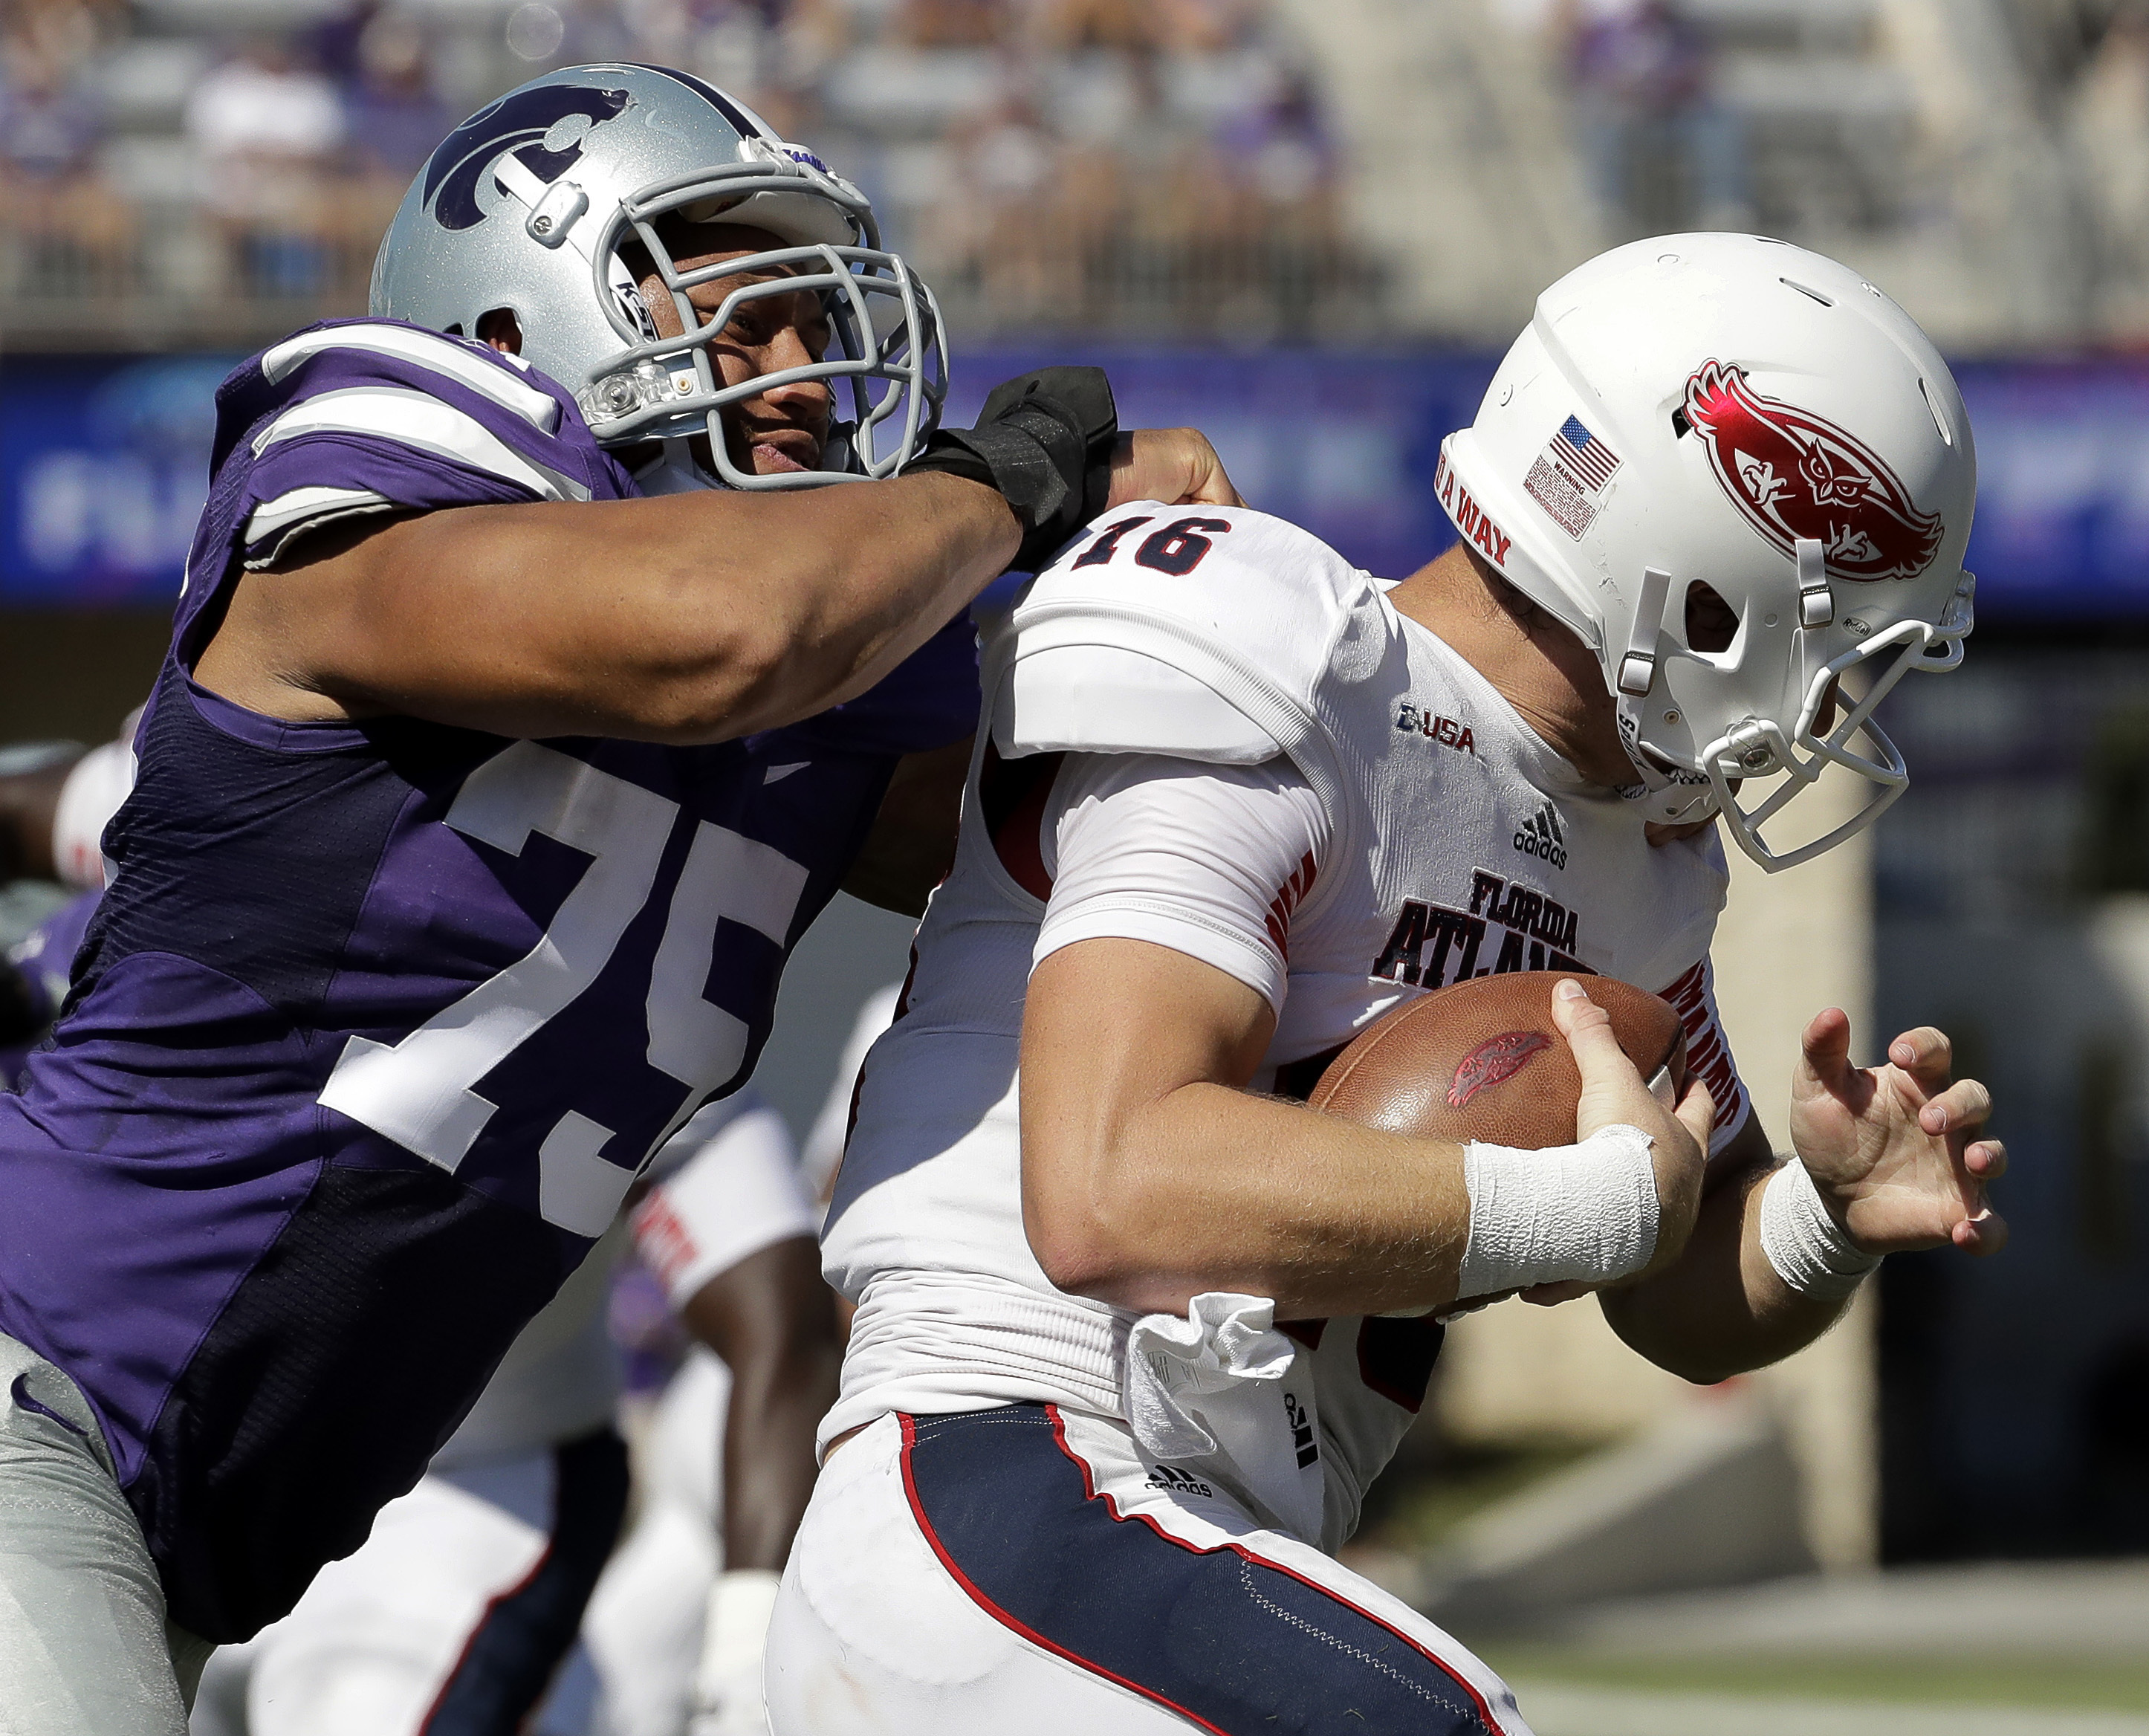 FILE - In this Sept. 17, 2016, file photo, Florida Atlantic quarterback Jason Driskel (16) is sacked by Kansas State defensive end Jordan Willis (75) during the first half of an NCAA college football game, in Manhattan, Kan. Perhaps the reason that Willis